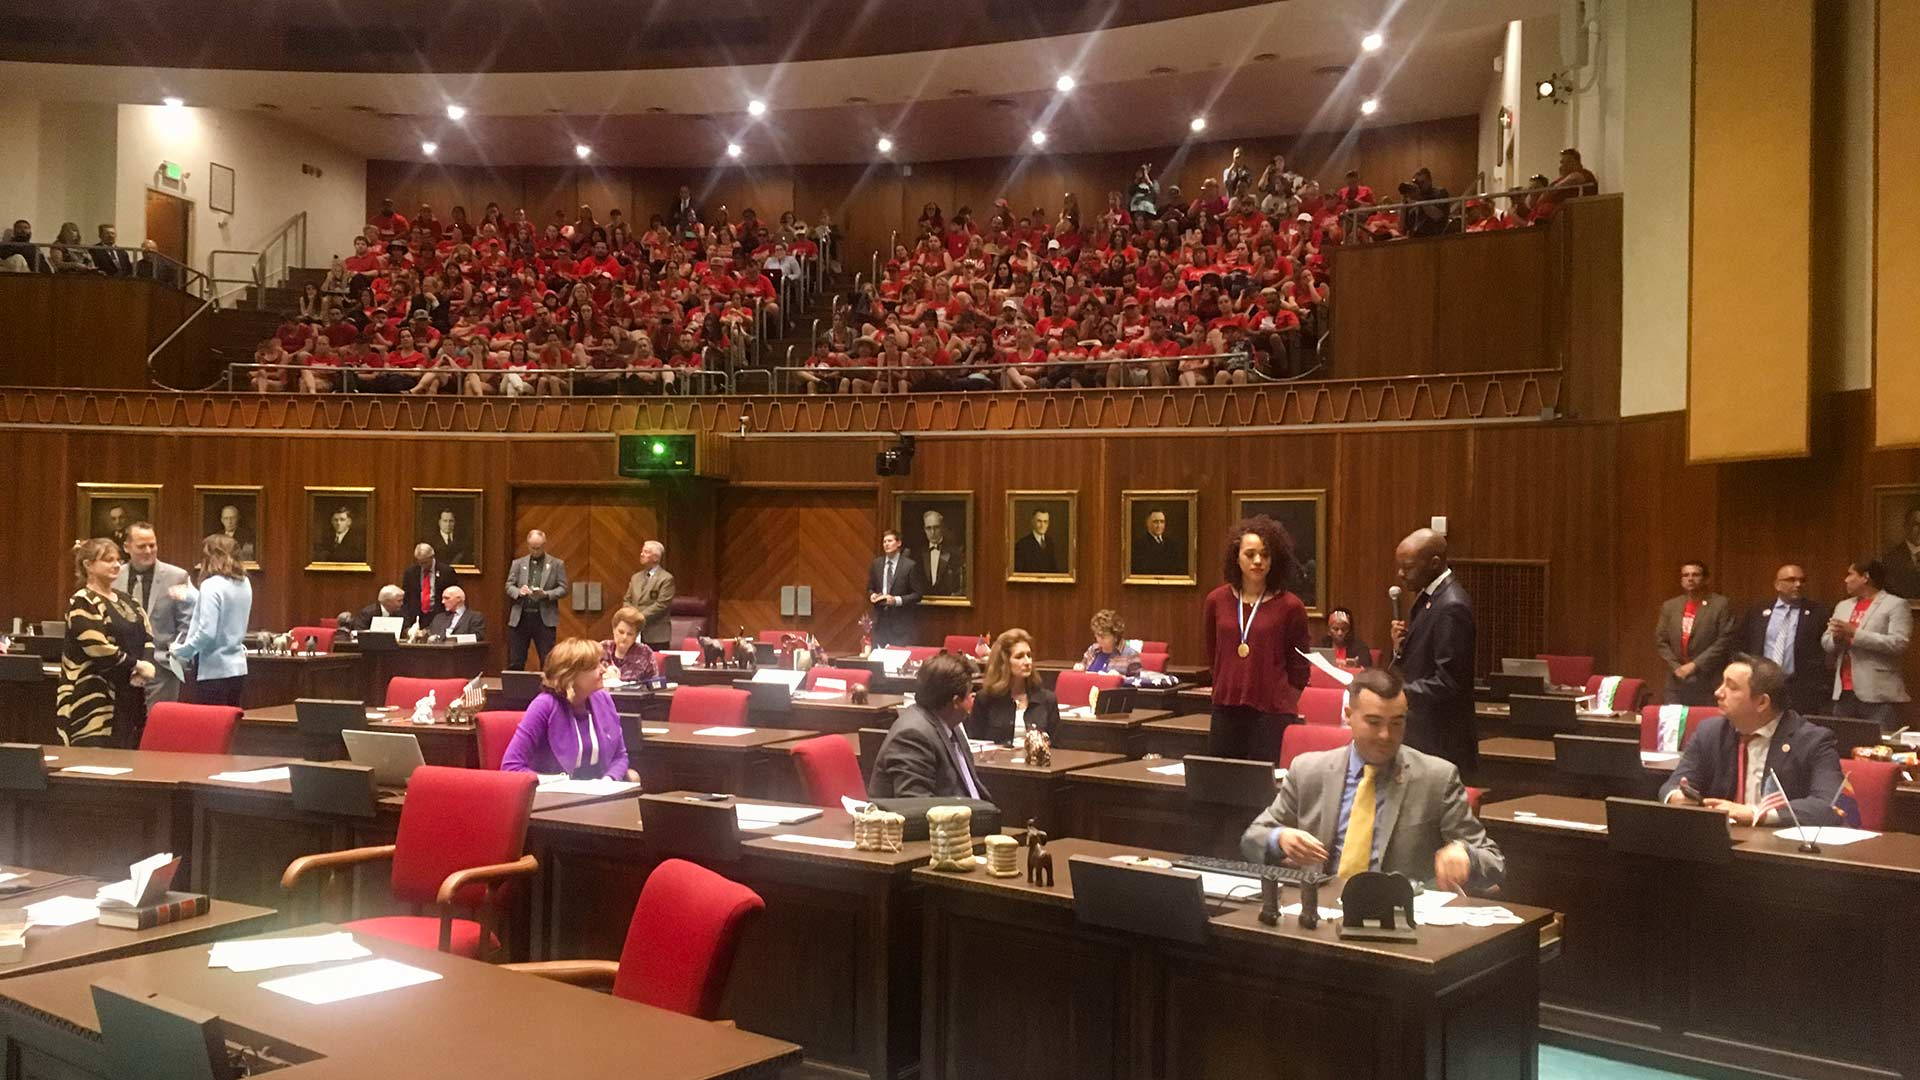 Teachers wearing #RedForEd fill the Arizona House gallery, April 20, 2018.